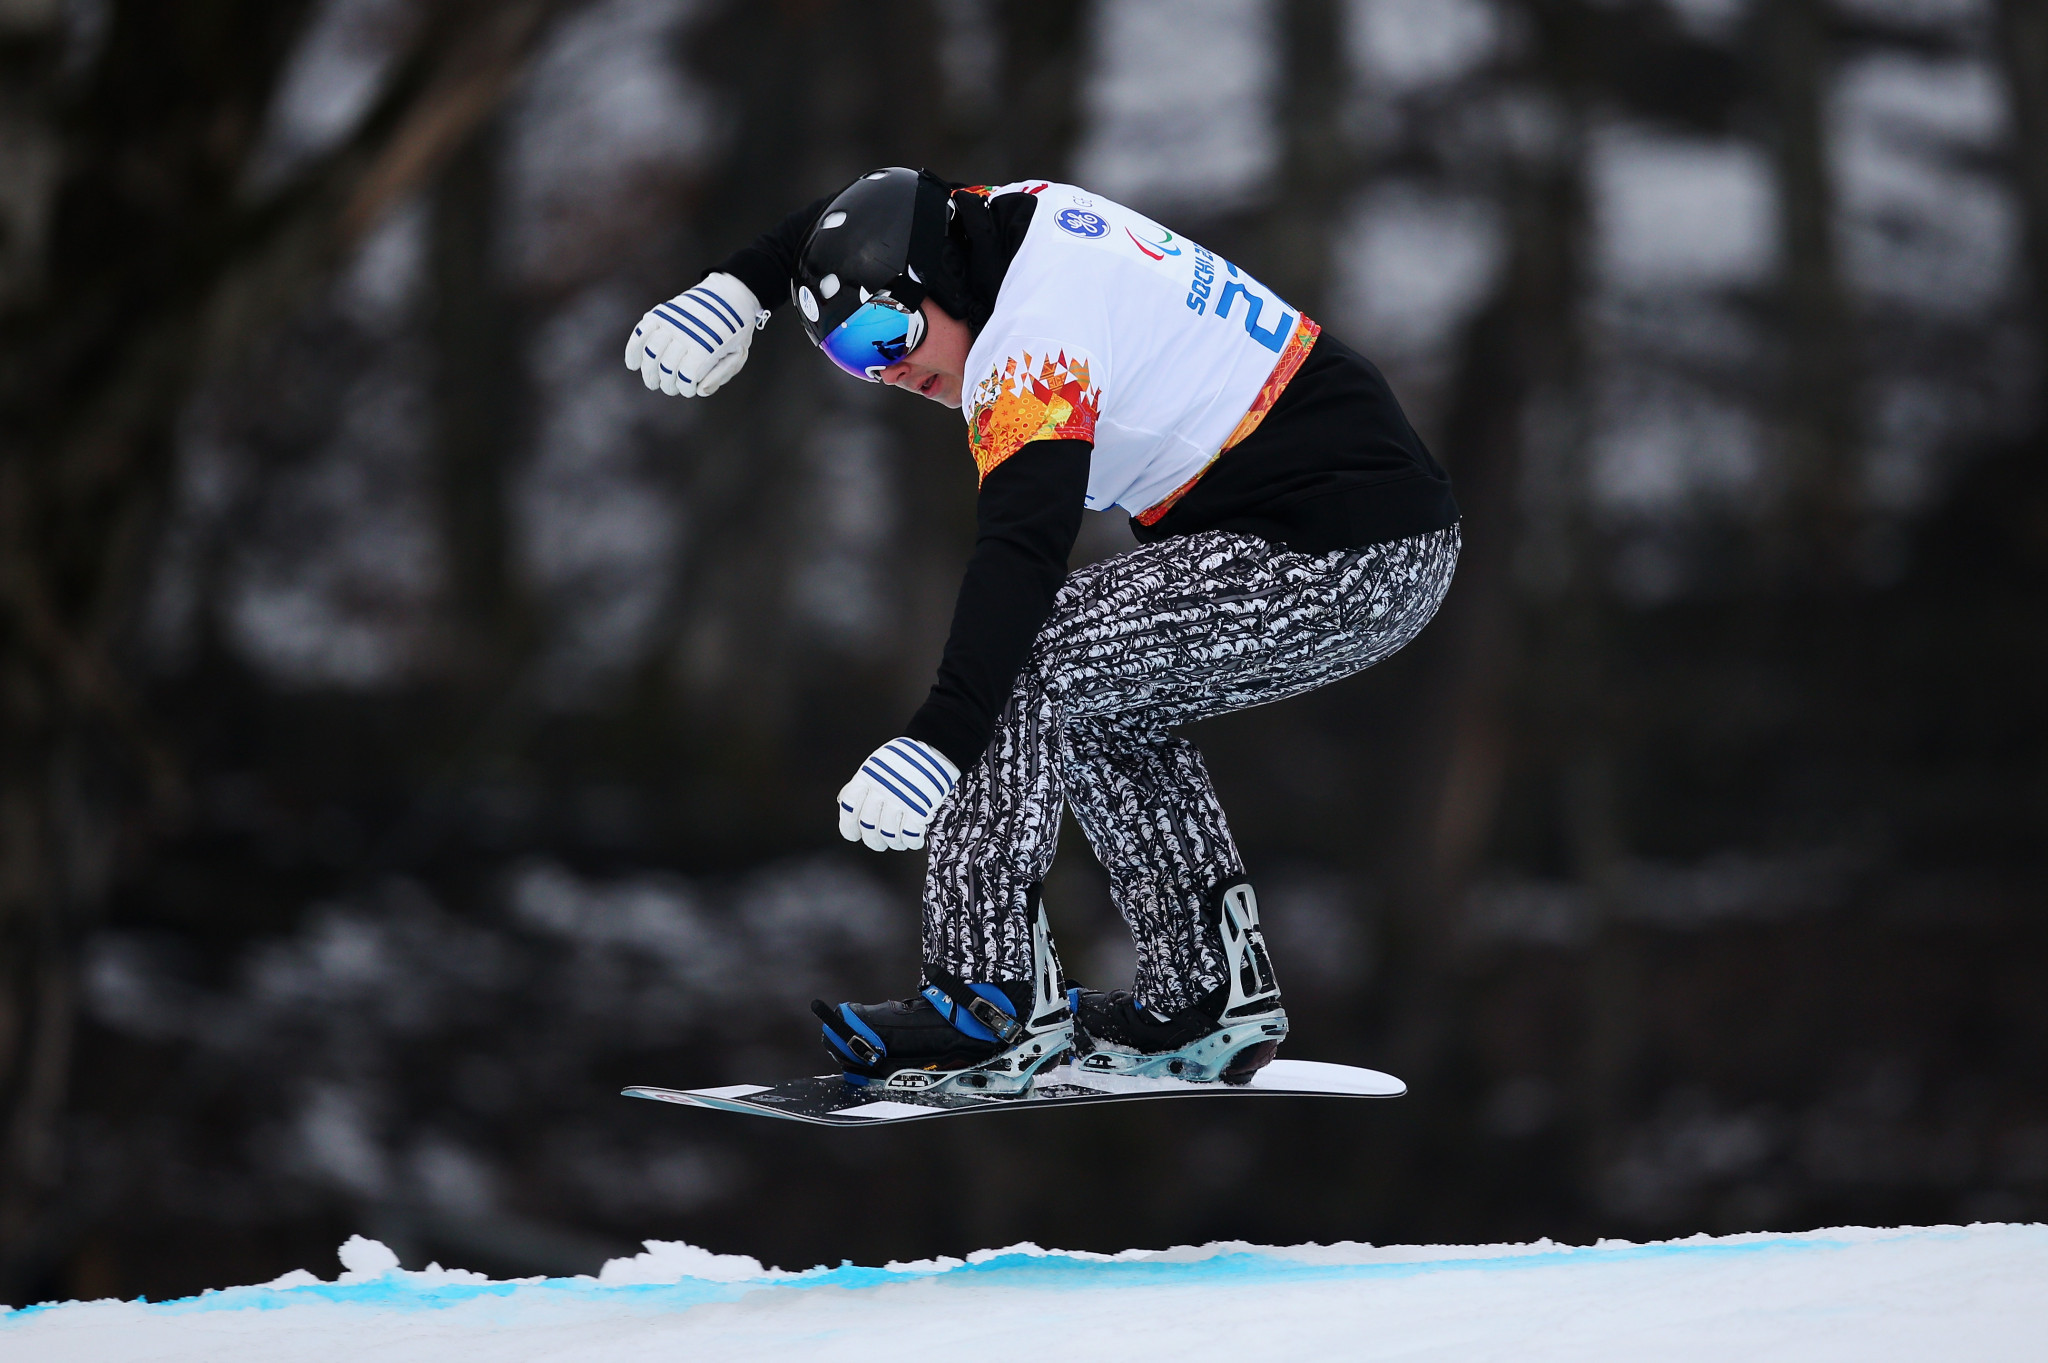 Suur-Hamari edges Shea to take victory at Para Snowboard World Cup